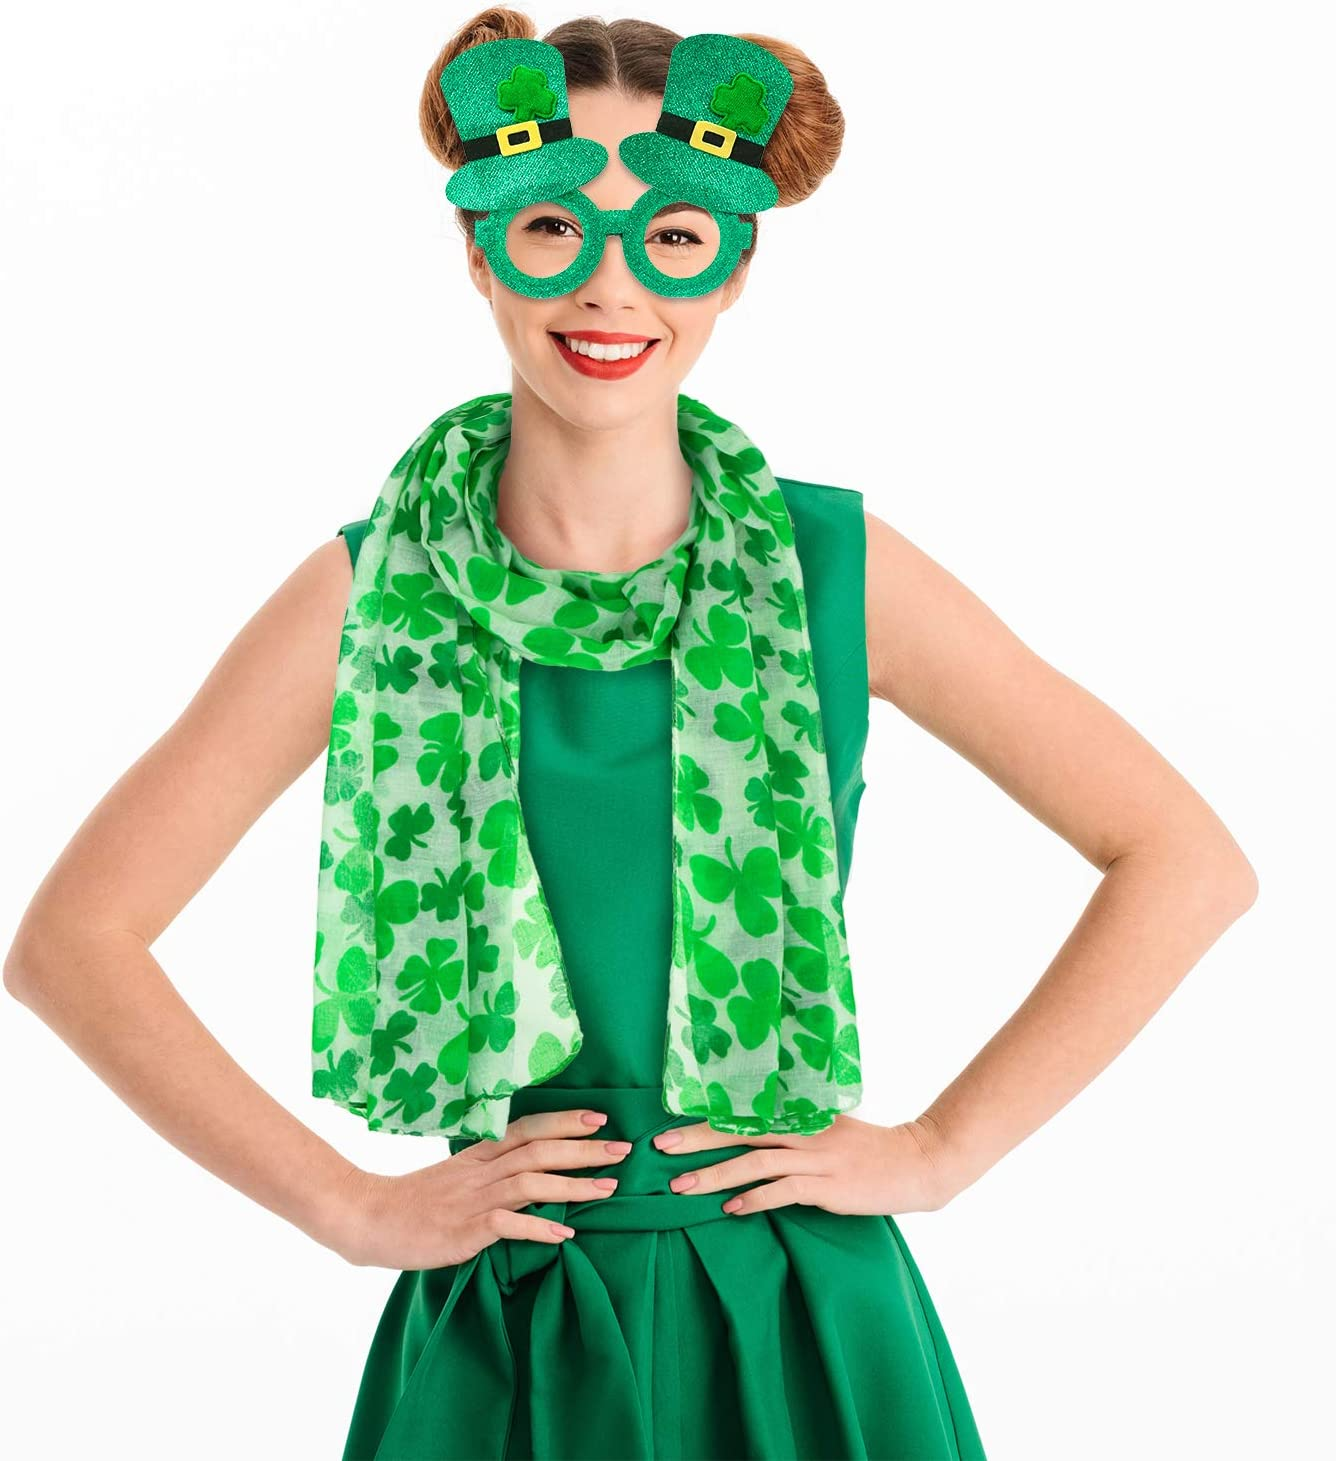 St Patricks Day Costume Accessory Set Include Green Irish Shamrock Scarf and Irish Top Hat Glasses for Irish Party Favors